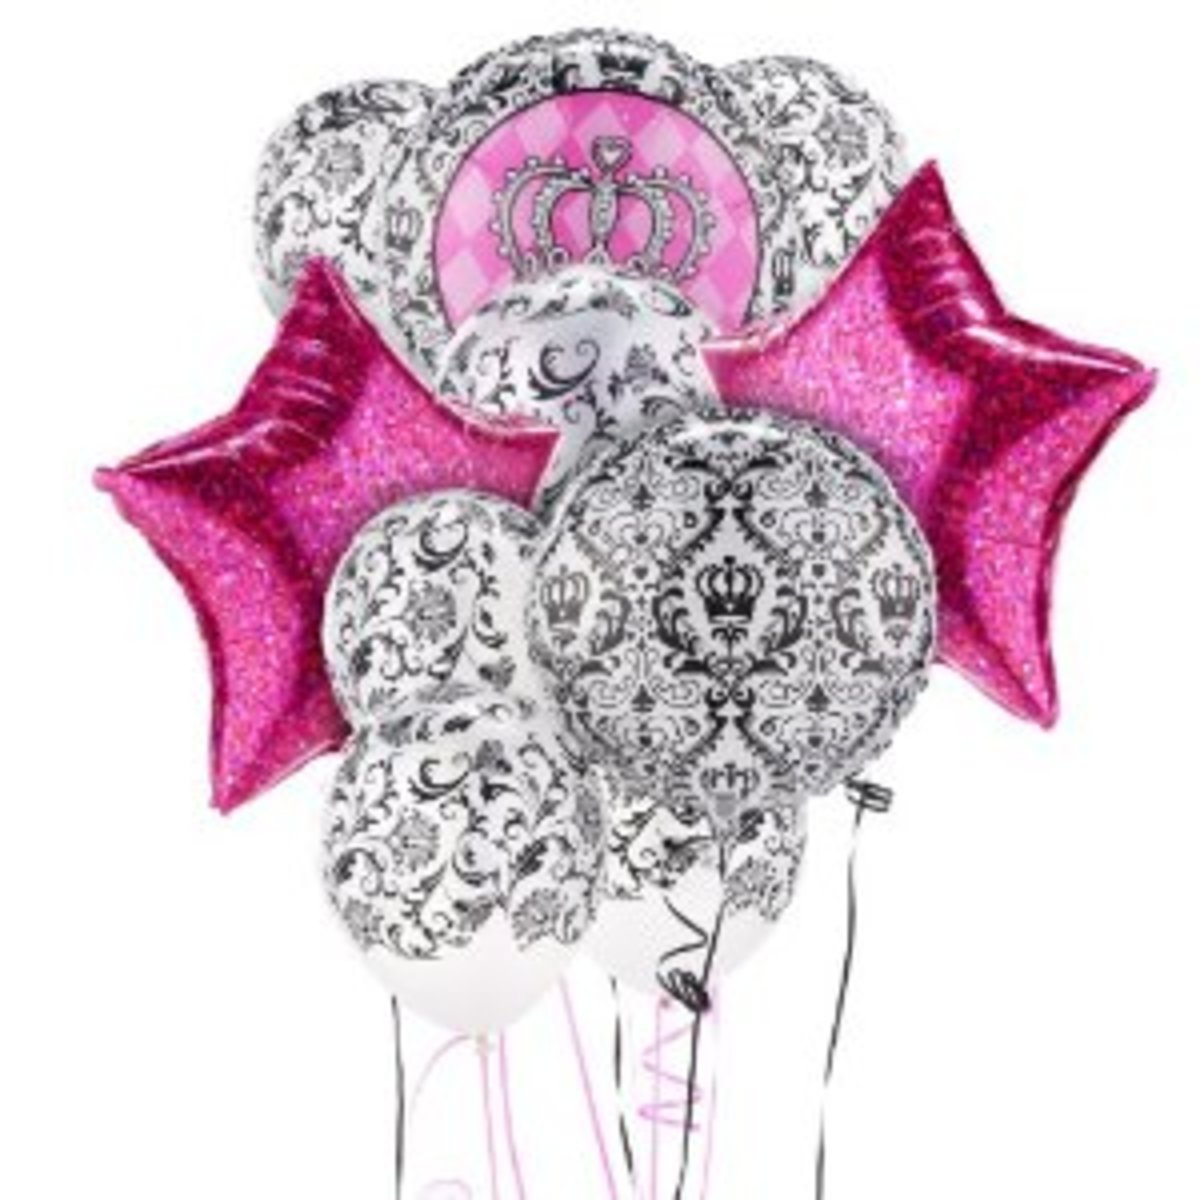 damask balloon set perfect for Royals decorations